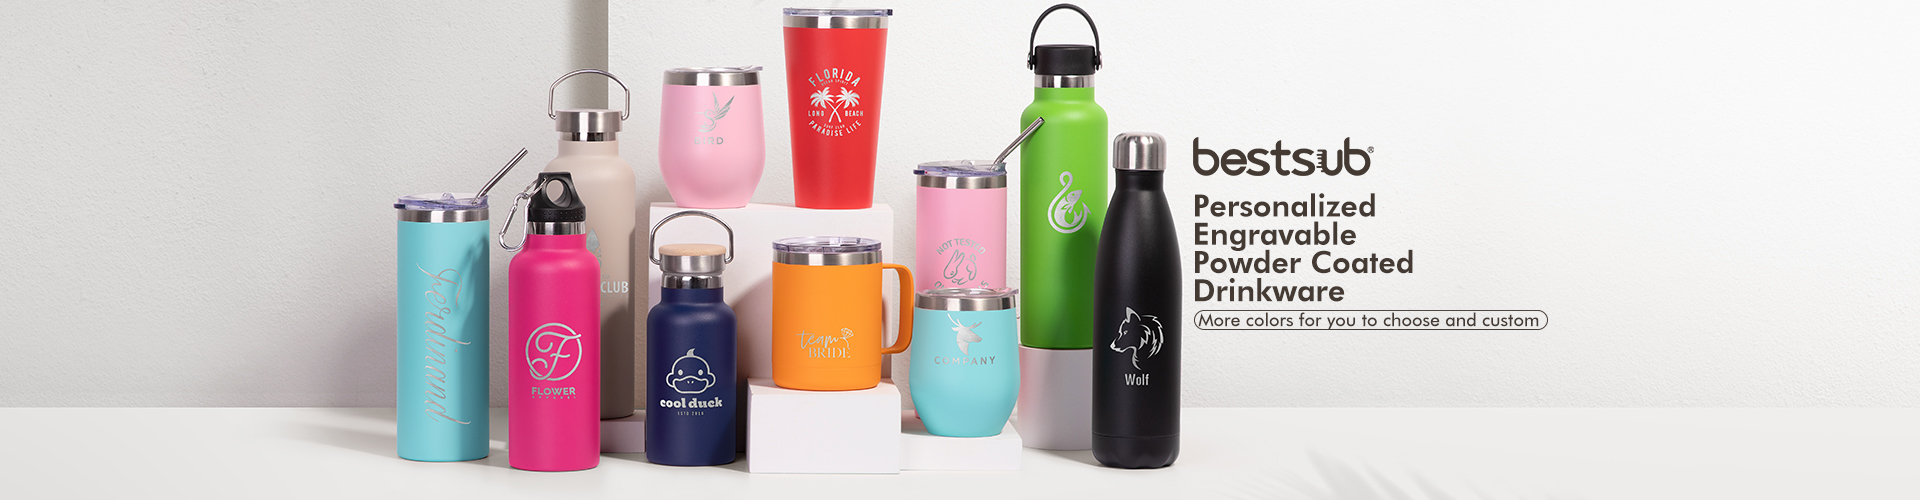 2020-7-8_Personalized_Powder_Coated_Drinkware_new_web